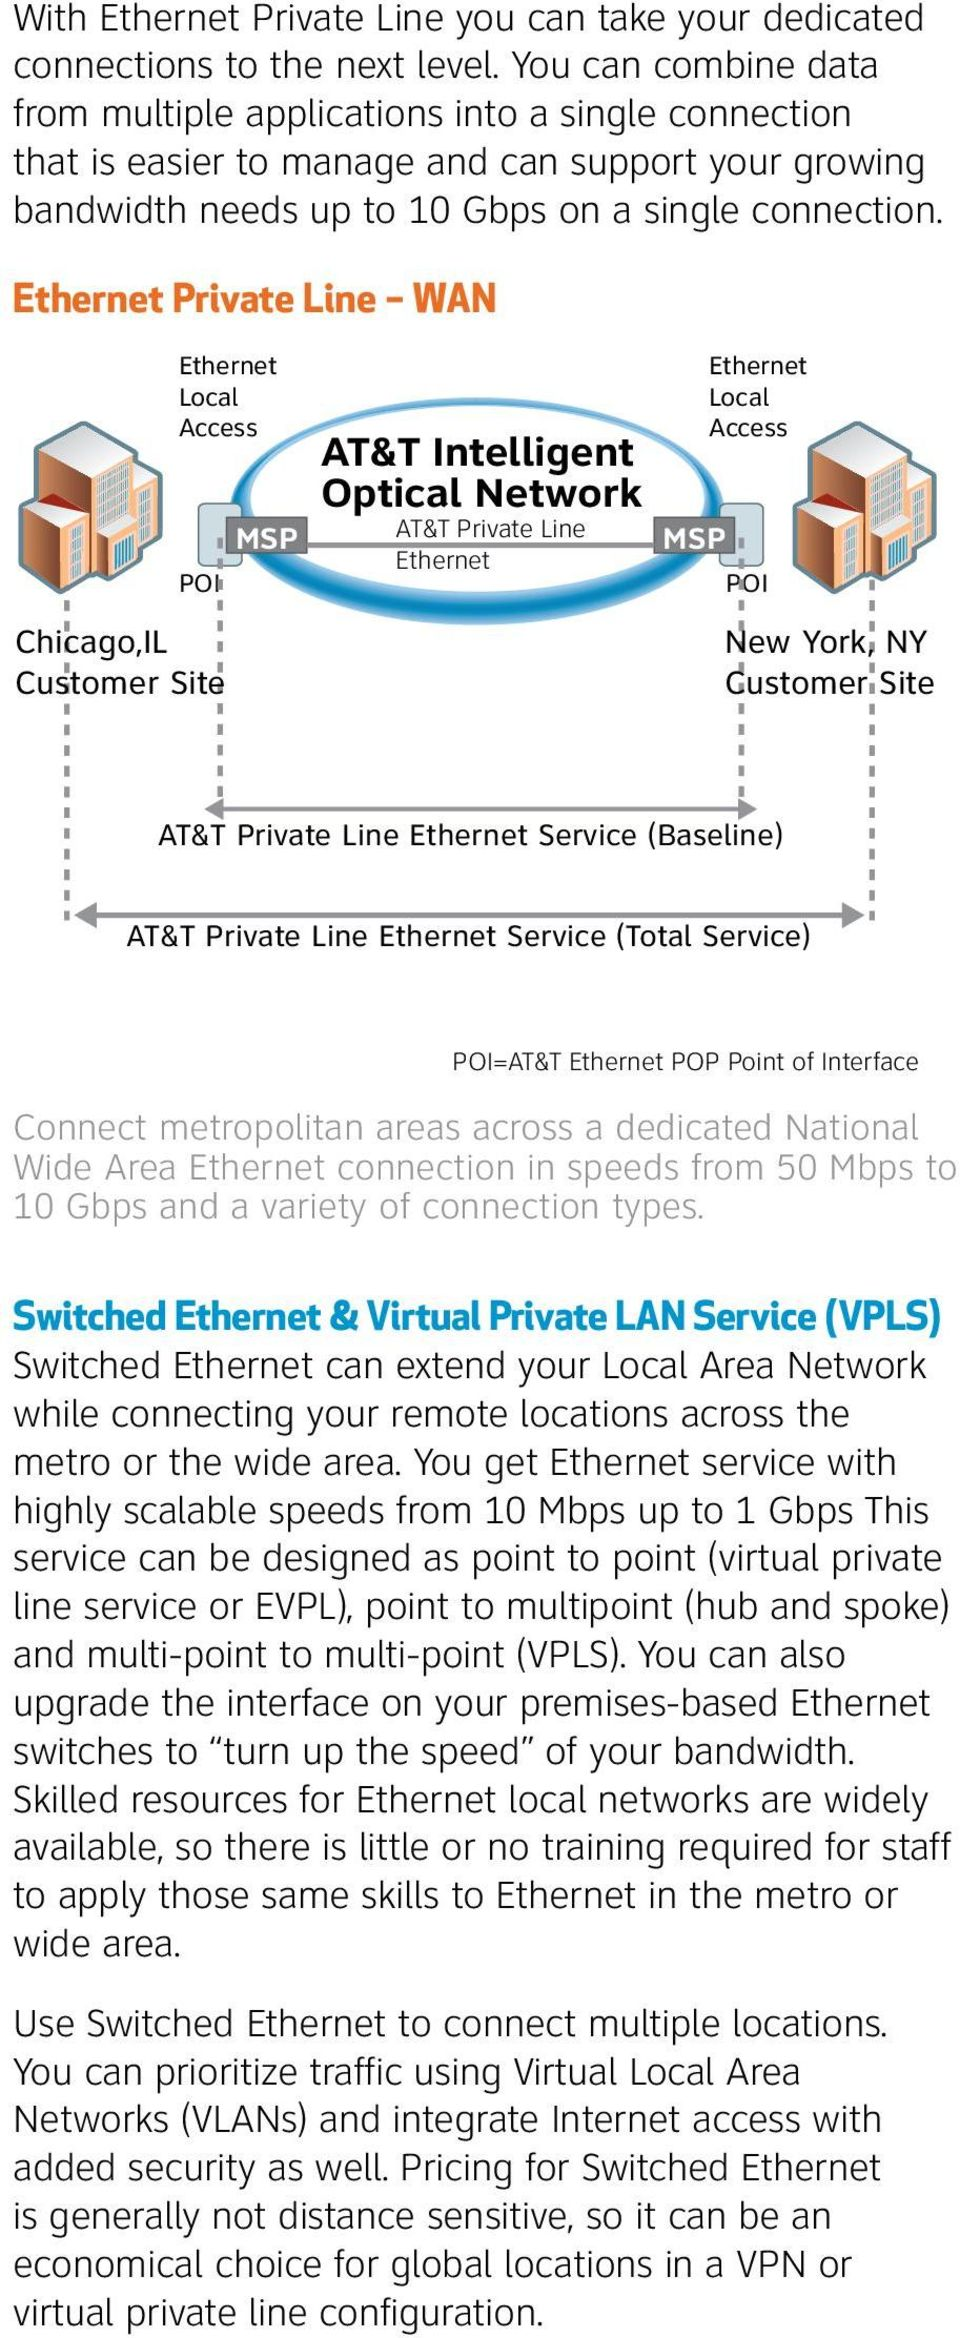 Private Line WAN Local Access Chicago,IL Customer Site MSP POI AT&T Intelligent Optical Network AT&T Private Line Local Access MSP POI New York, NY Customer Site AT&T Private Line Service (Baseline)